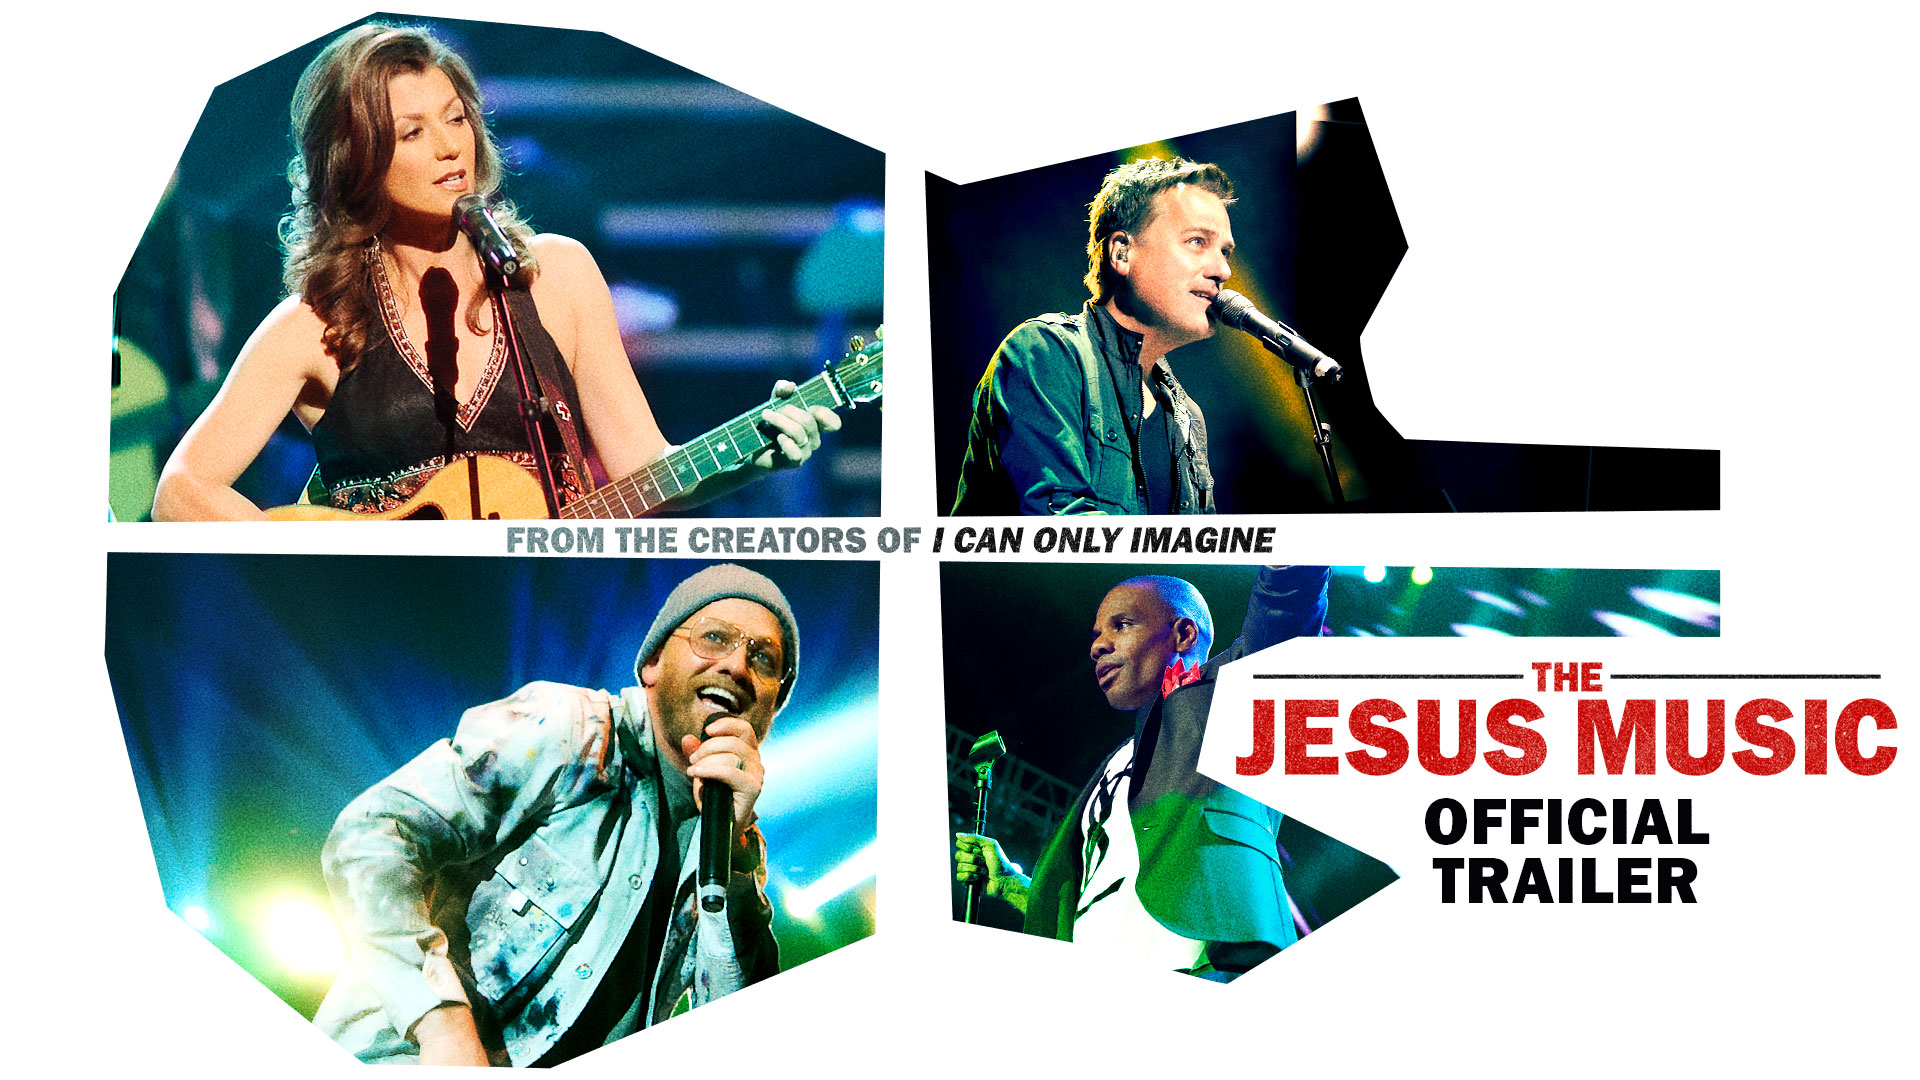 The Jesus Music Official Trailer